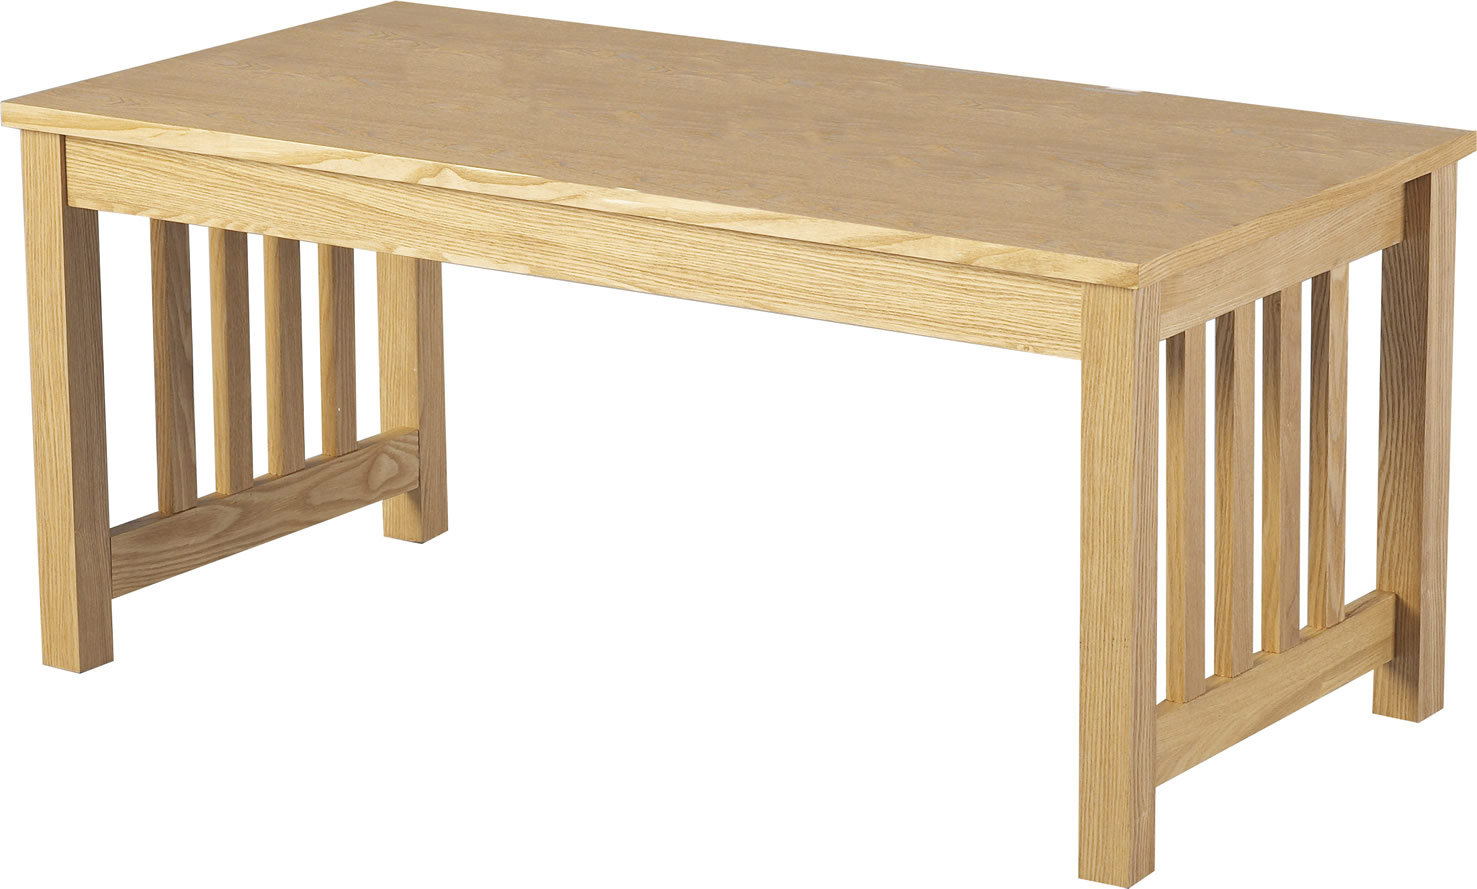 ashmore_coffee_table.jpg